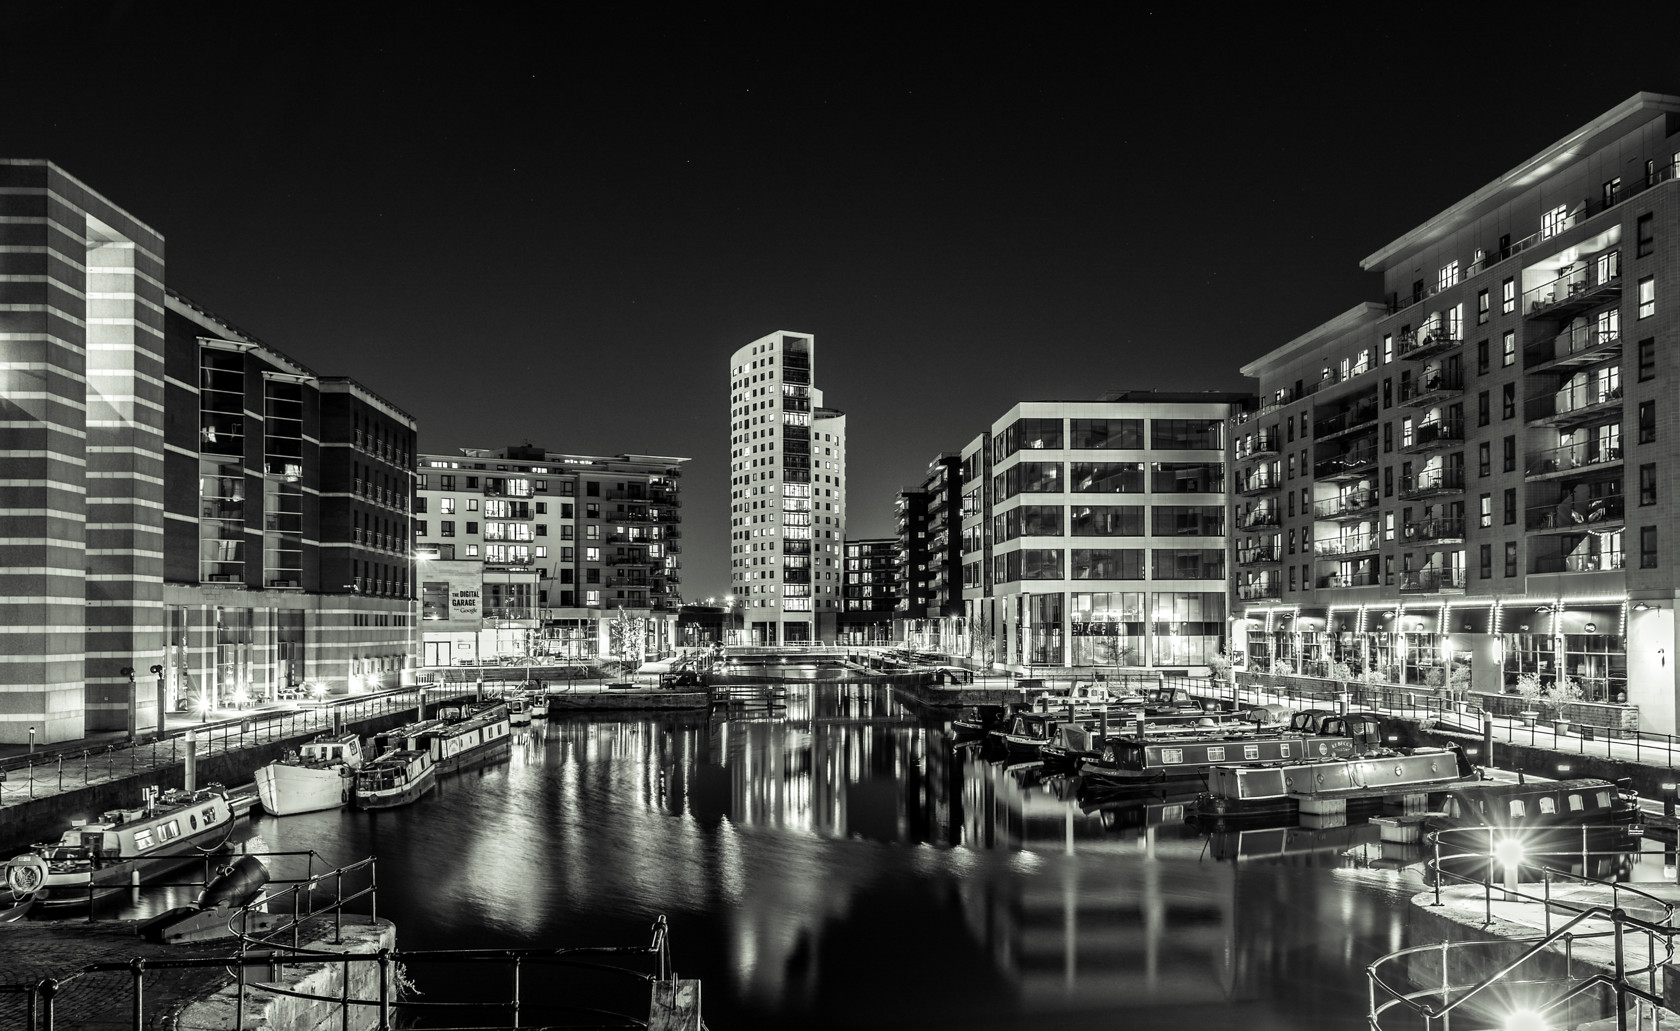 leeds dock at night (ref can 34) 